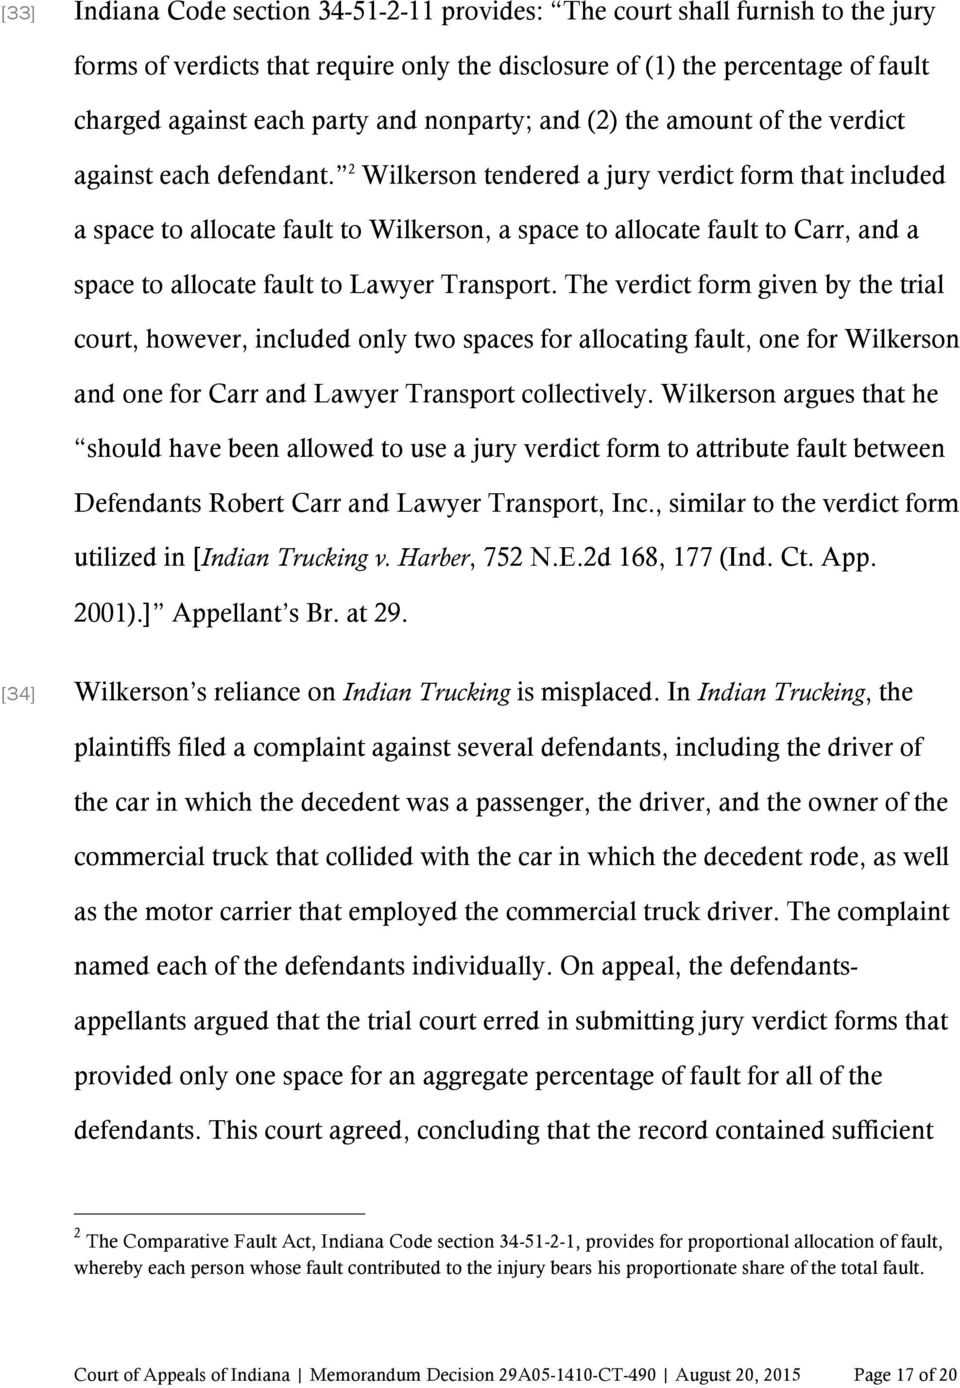 2 Wilkerson tendered a jury verdict form that included a space to allocate fault to Wilkerson, a space to allocate fault to Carr, and a space to allocate fault to Lawyer Transport.